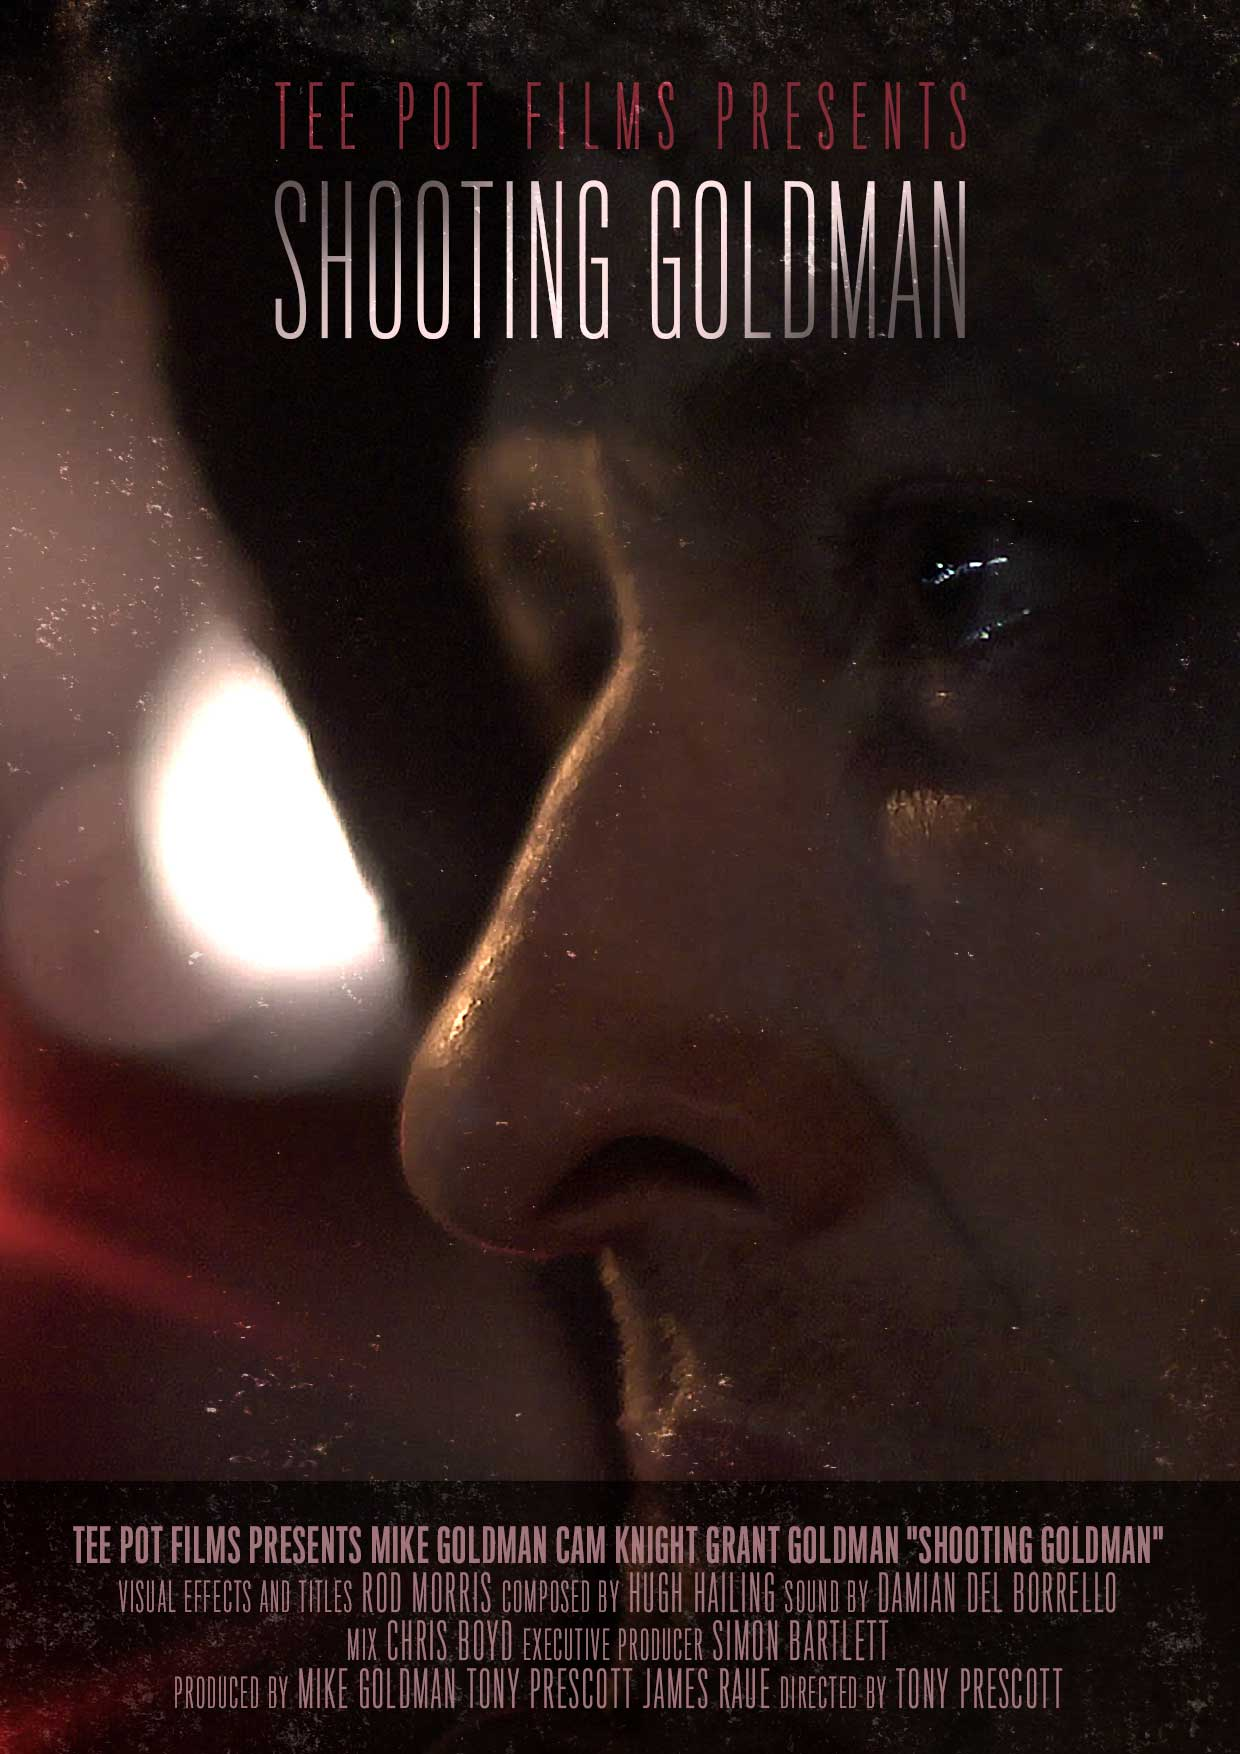 Shooting Goldman